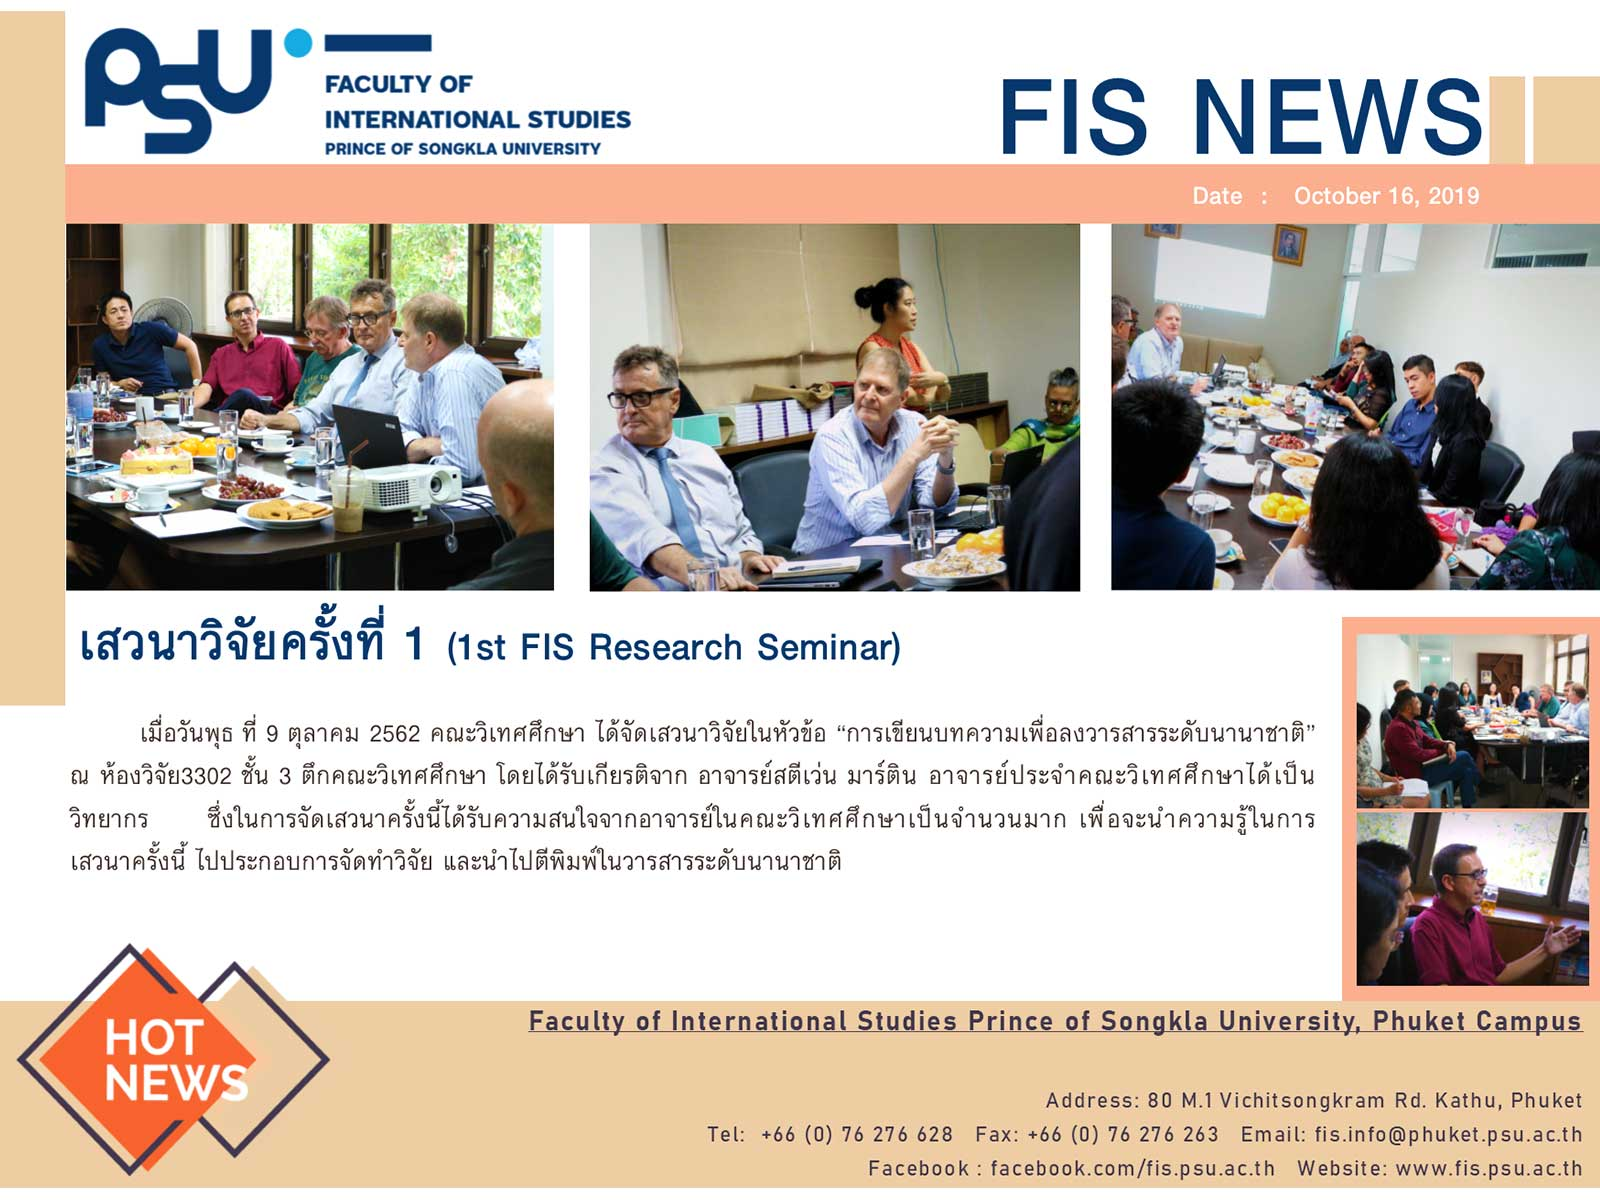 Asst Prof Dr Steven A Martin | Faculty of International Studies 1st FIS Research Seminar | Prince of Songkla University